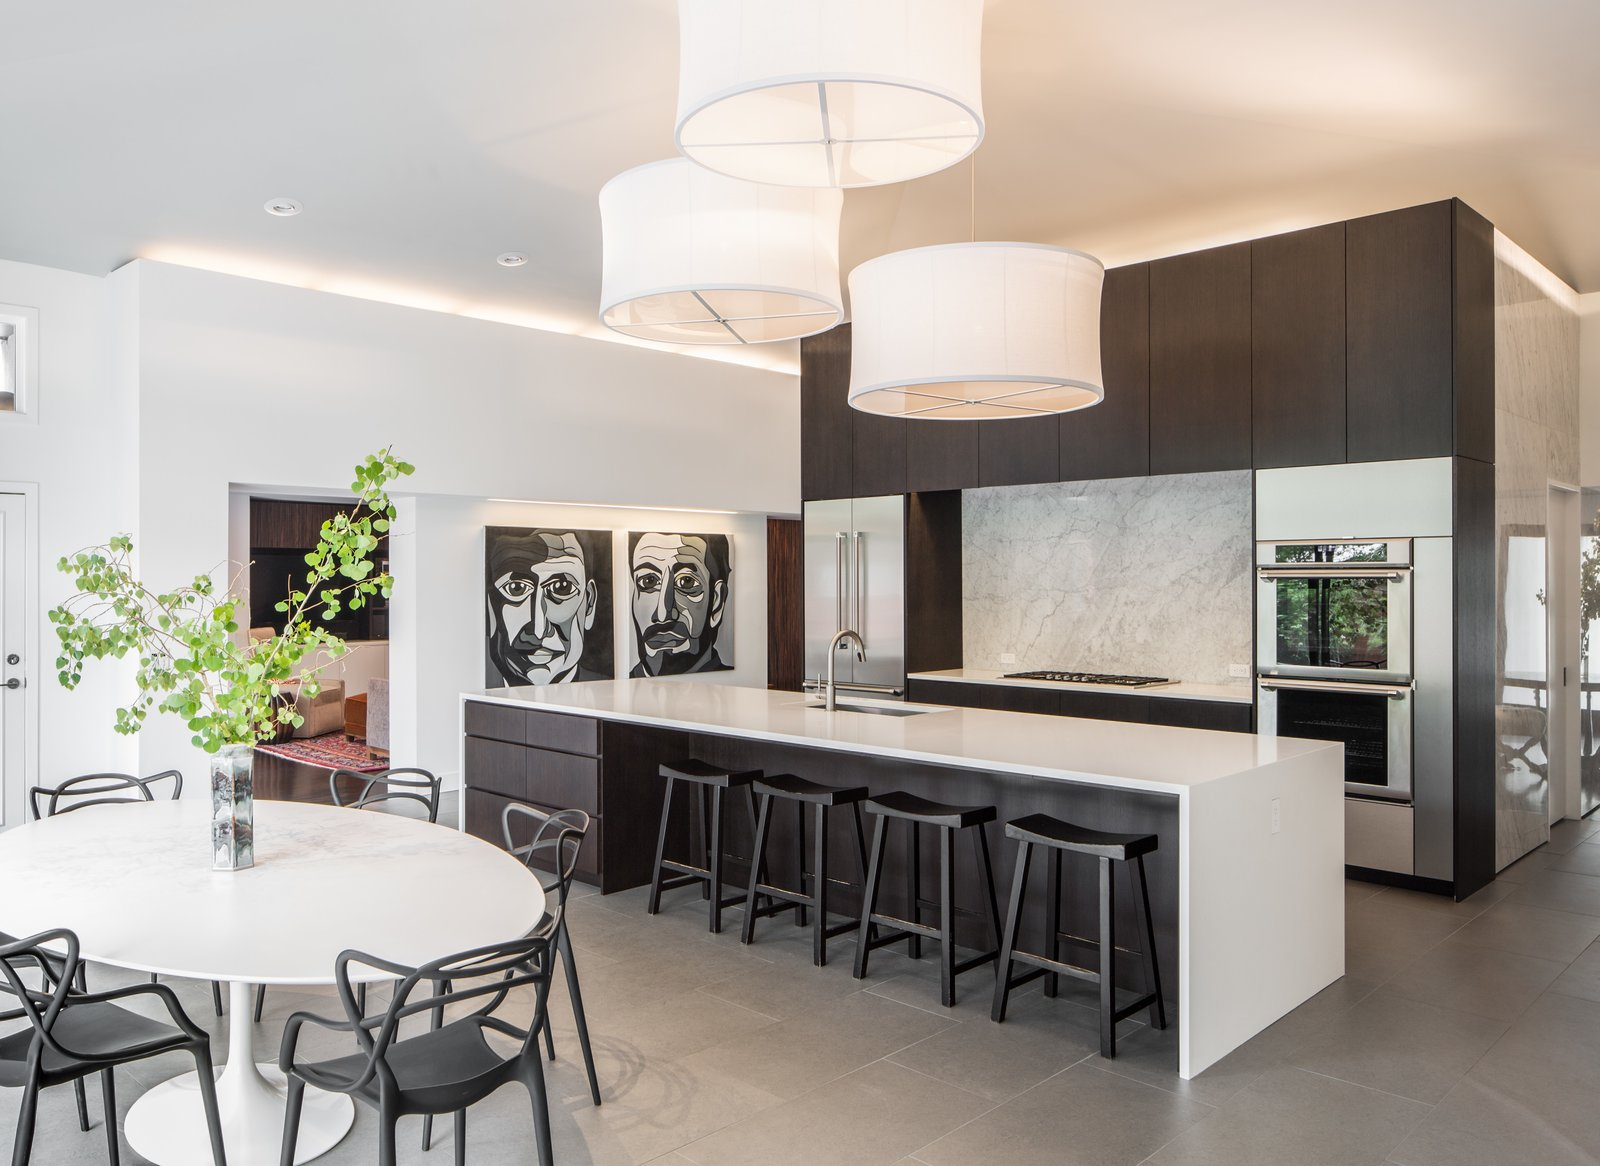 Kitchen, Wood, Porcelain Tile, Stone Slab, Engineered Quartz, Pendant, Refrigerator, Wall Oven, Cooktops, and Undermount Kitchen and Dining Area  Kitchen Undermount Wall Oven Porcelain Tile Photos from Donner Residence